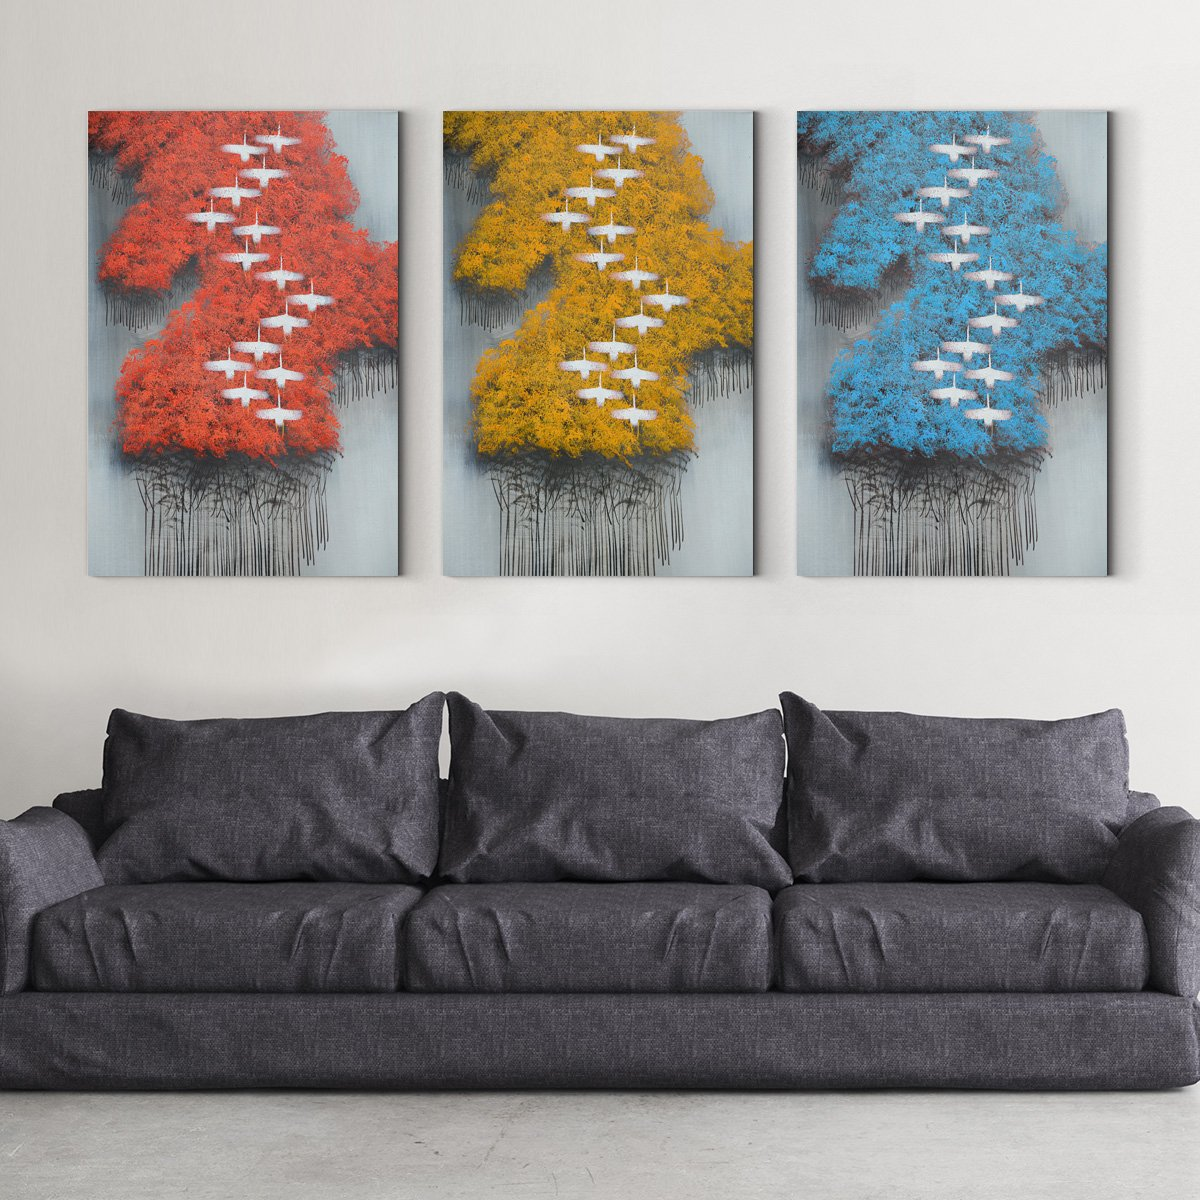 Wild goose forest - abstract adornment picture - sitting room - Multi Panel Wall Art